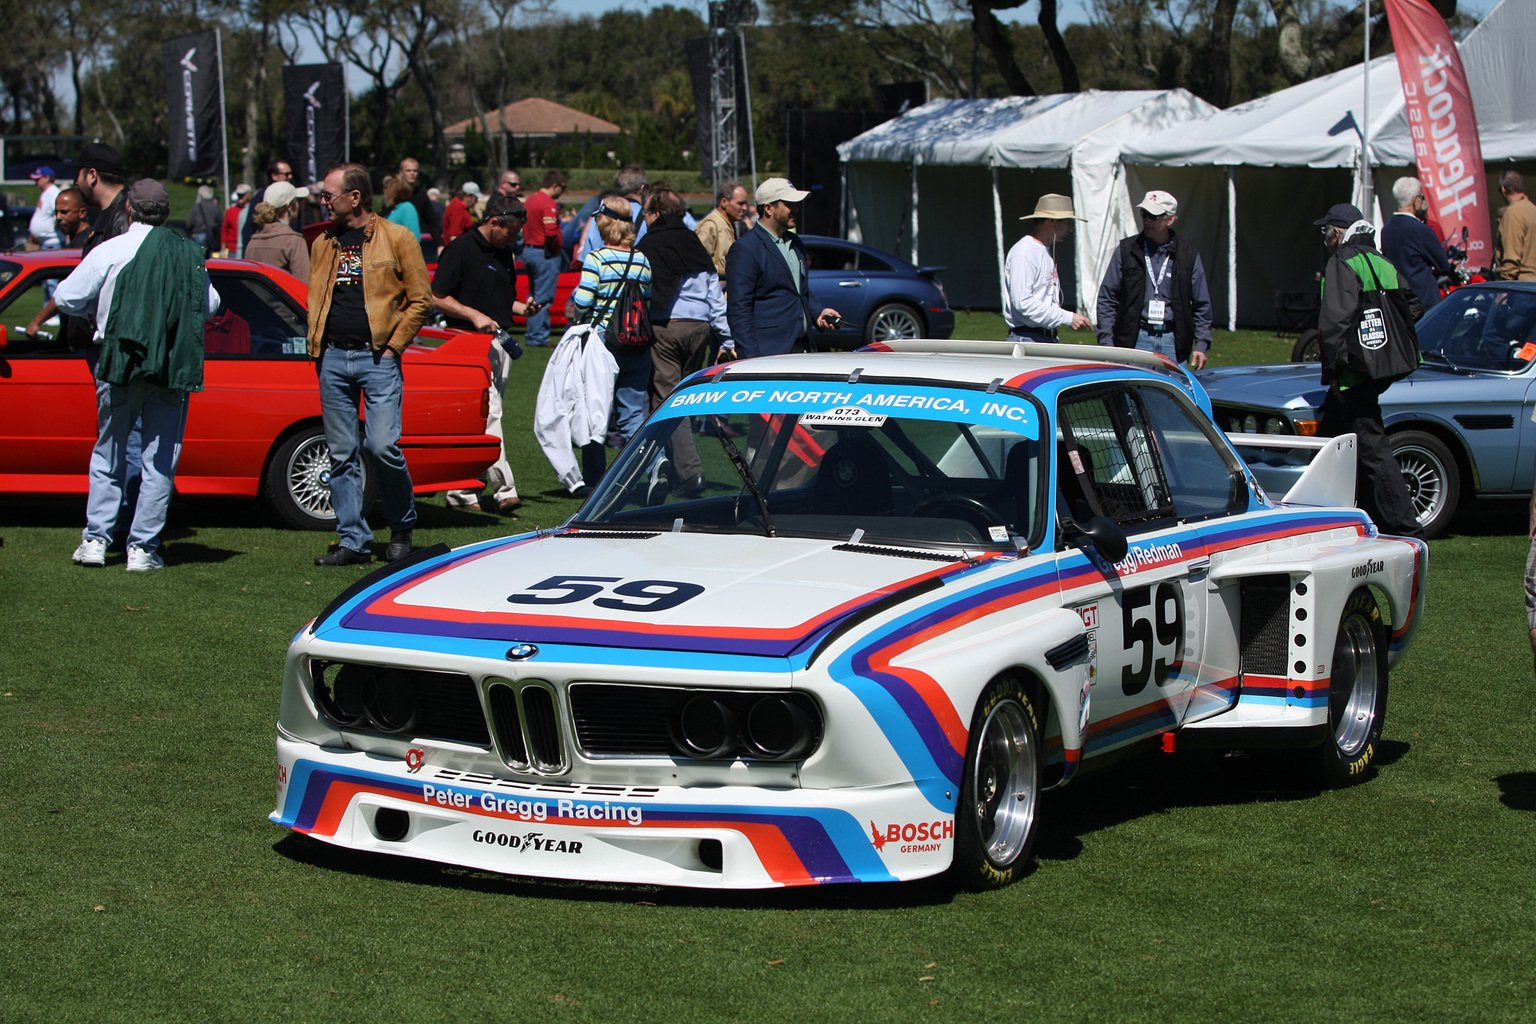 hintergrundbild bmw racing sport - photo #17